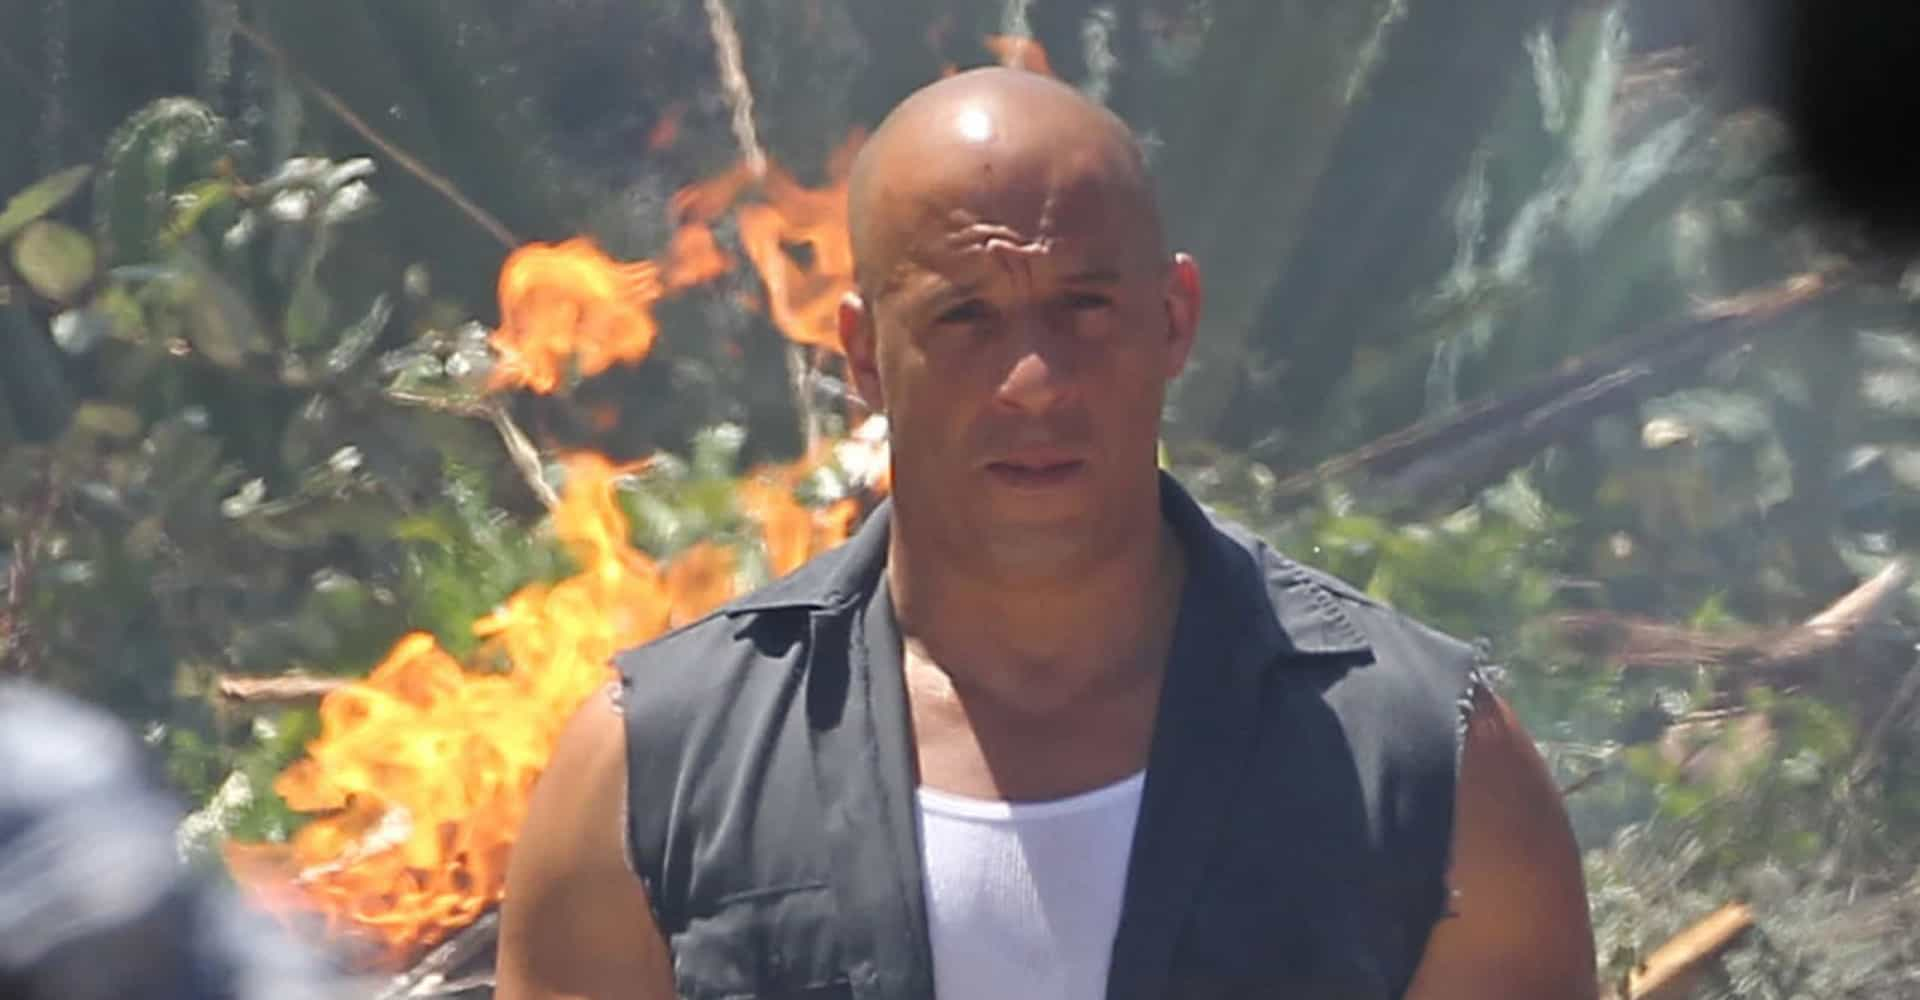 'Fast & Furious 9' and other TV and film accidents